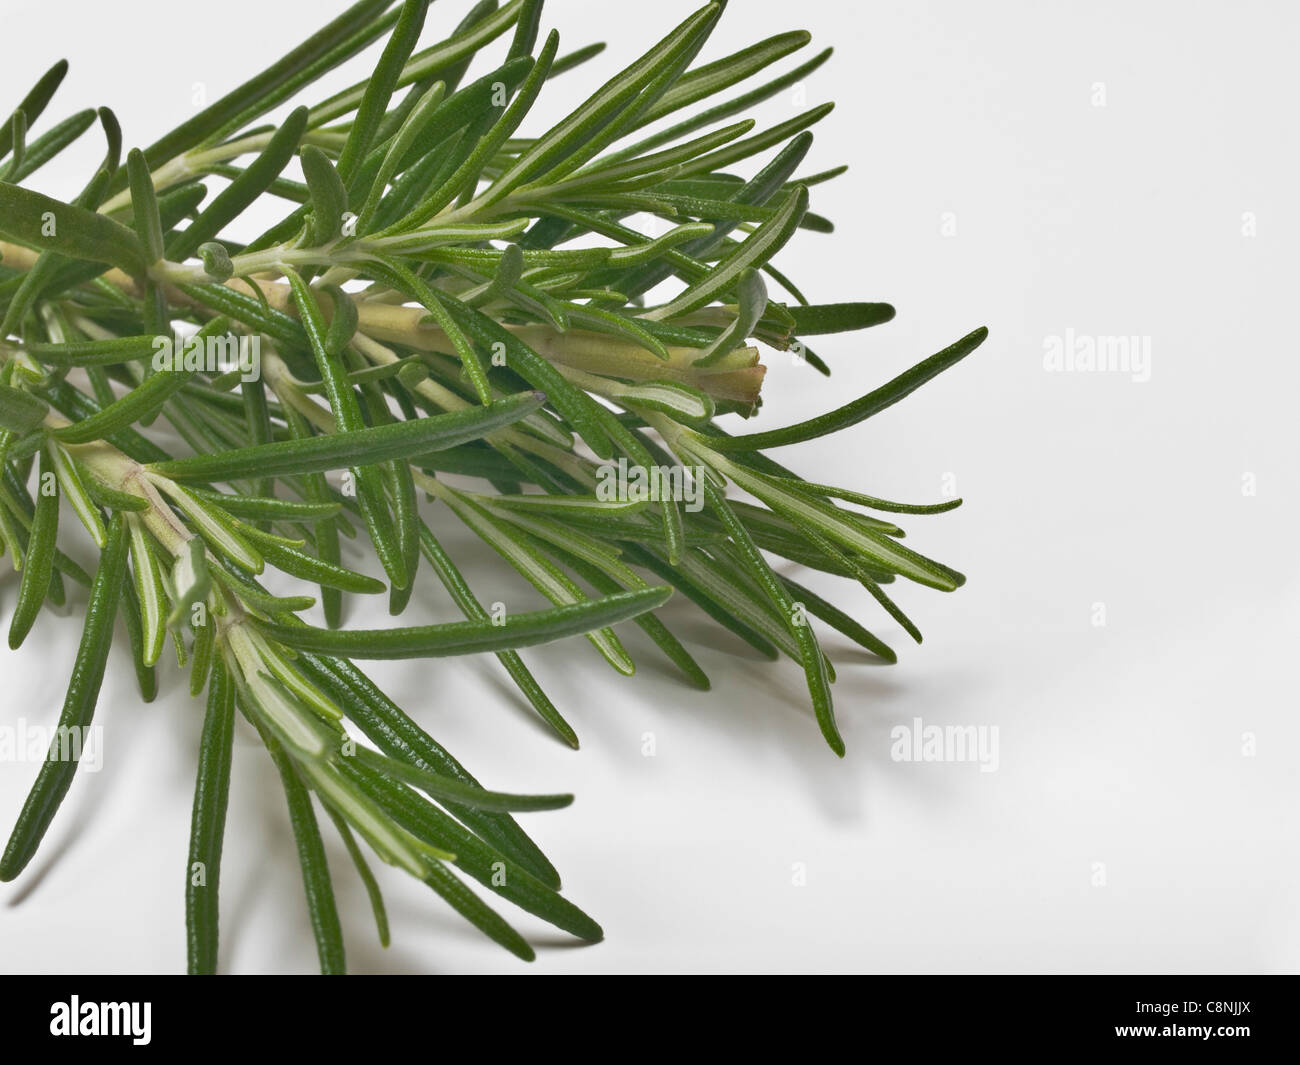 Detailansicht von Rosmarin-Zweigen | Detail photo of Rosemary Sprigs - Stock Image